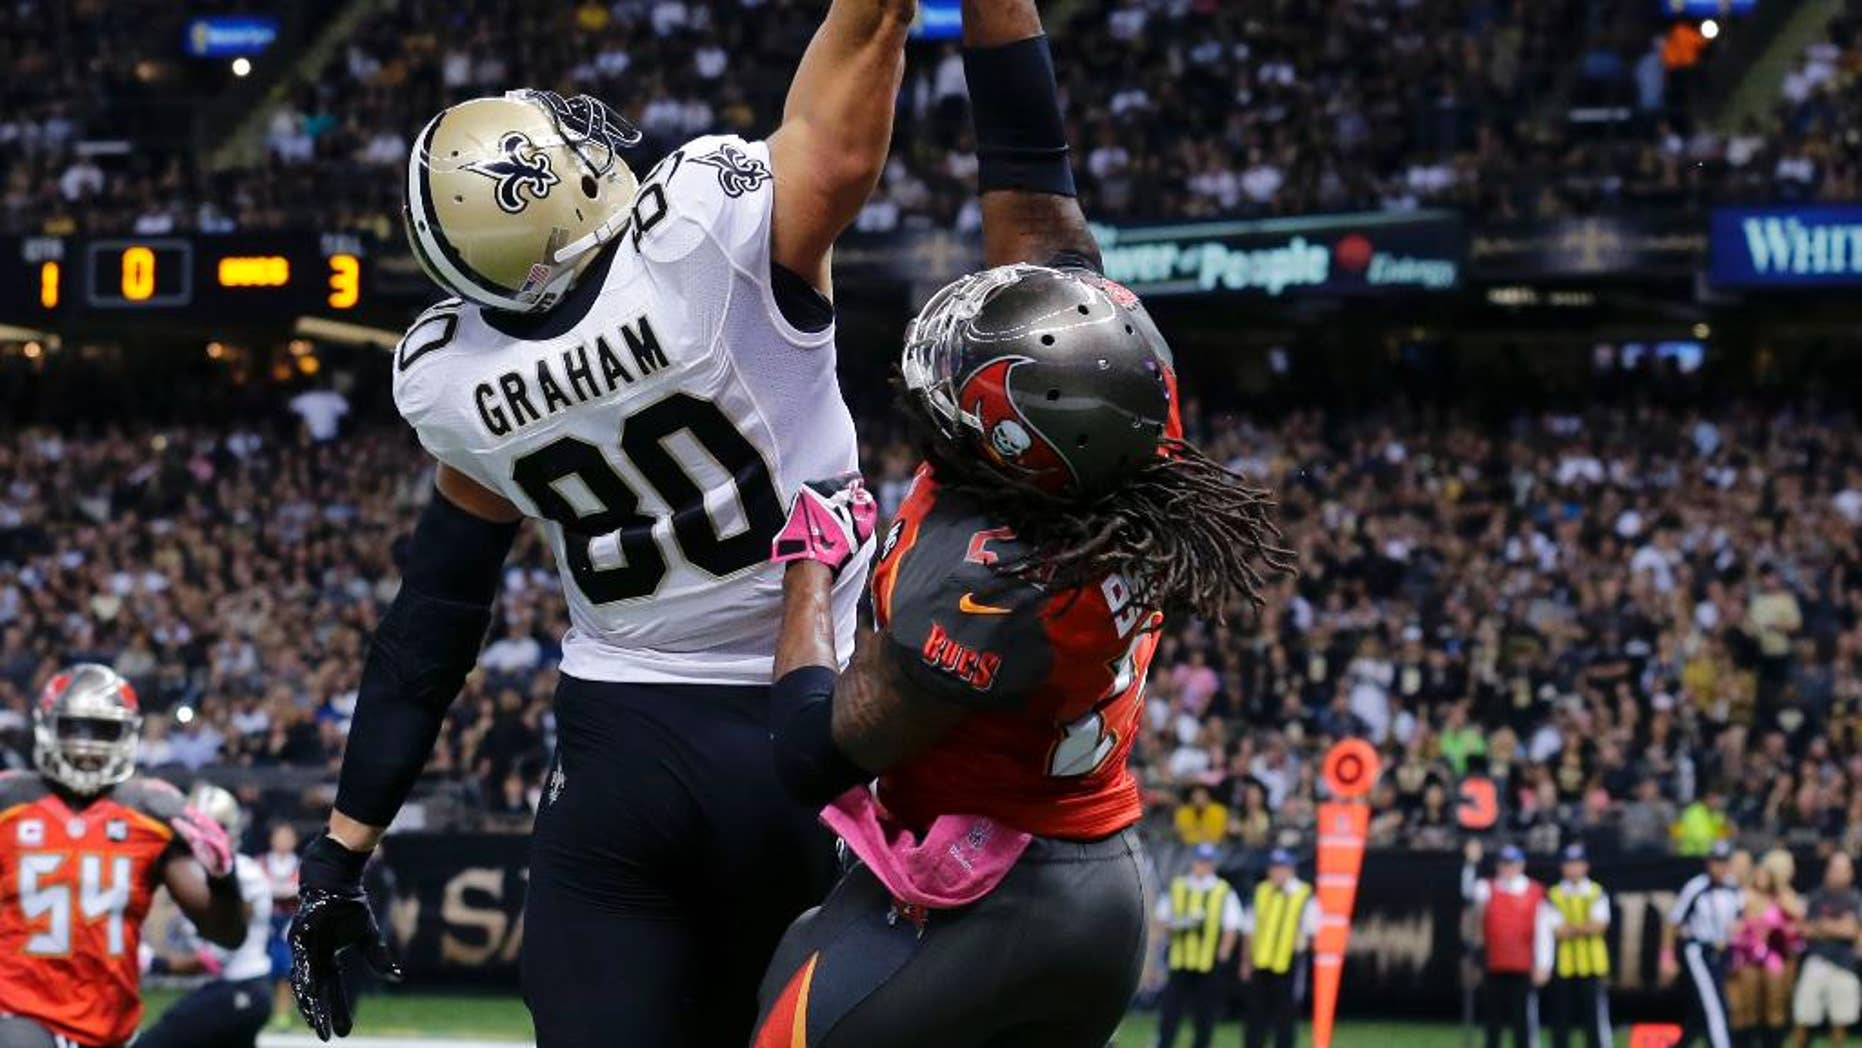 New Orleans Saints tight end Jimmy Graham (80) leaps for an overthrown pass as Tampa Bay Buccaneers strong safety Mark Barron defends in the first half of an NFL football game in New Orleans, Sunday, Oct. 5, 2014. (AP Photo/Bill Haber)